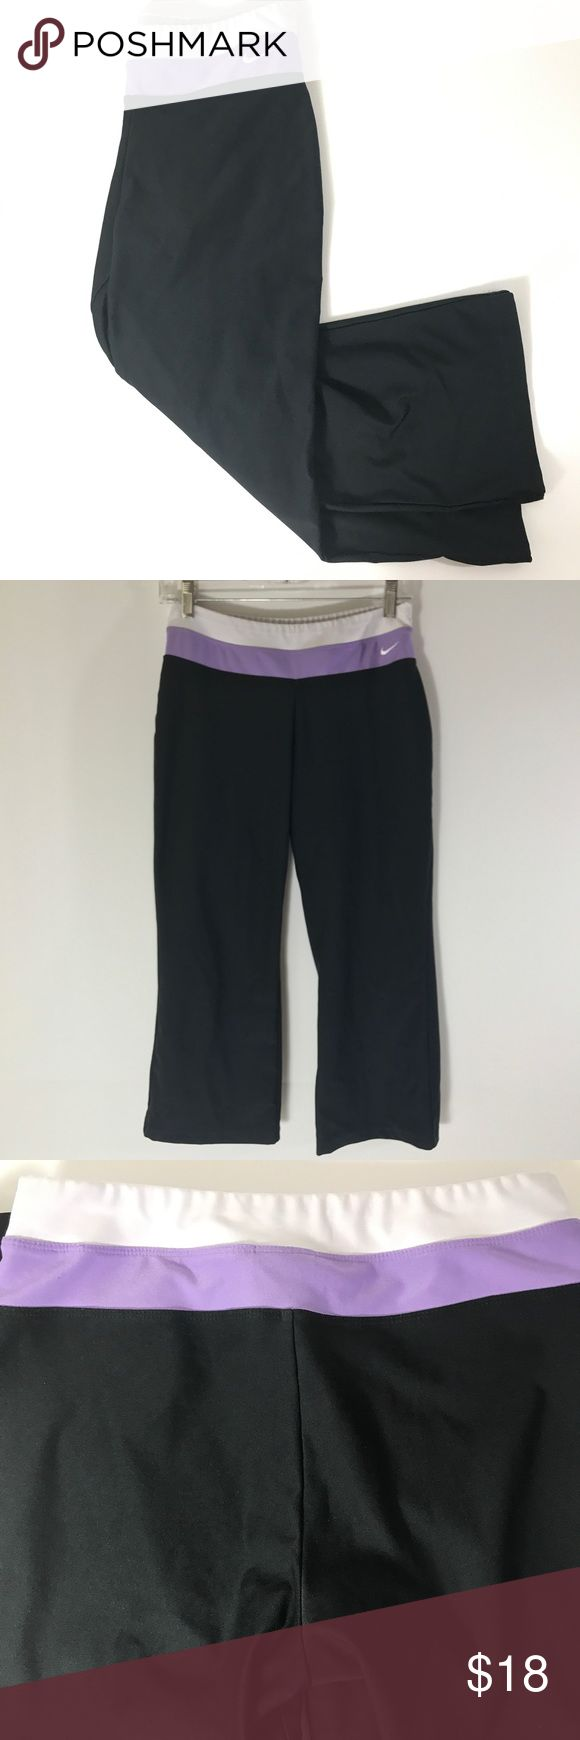 """Nike DRI-FIT Black Capri Running Pants Size Small Nike DRI-FIT Black Capri Running Pants Size Small Stretch Leggings Fitness Yoga  Condition Good shape no rips and no stains Measurements Waist is stretch measures flat at 26""""  Inseam 22.5"""" H101 Nike Pants Capris"""